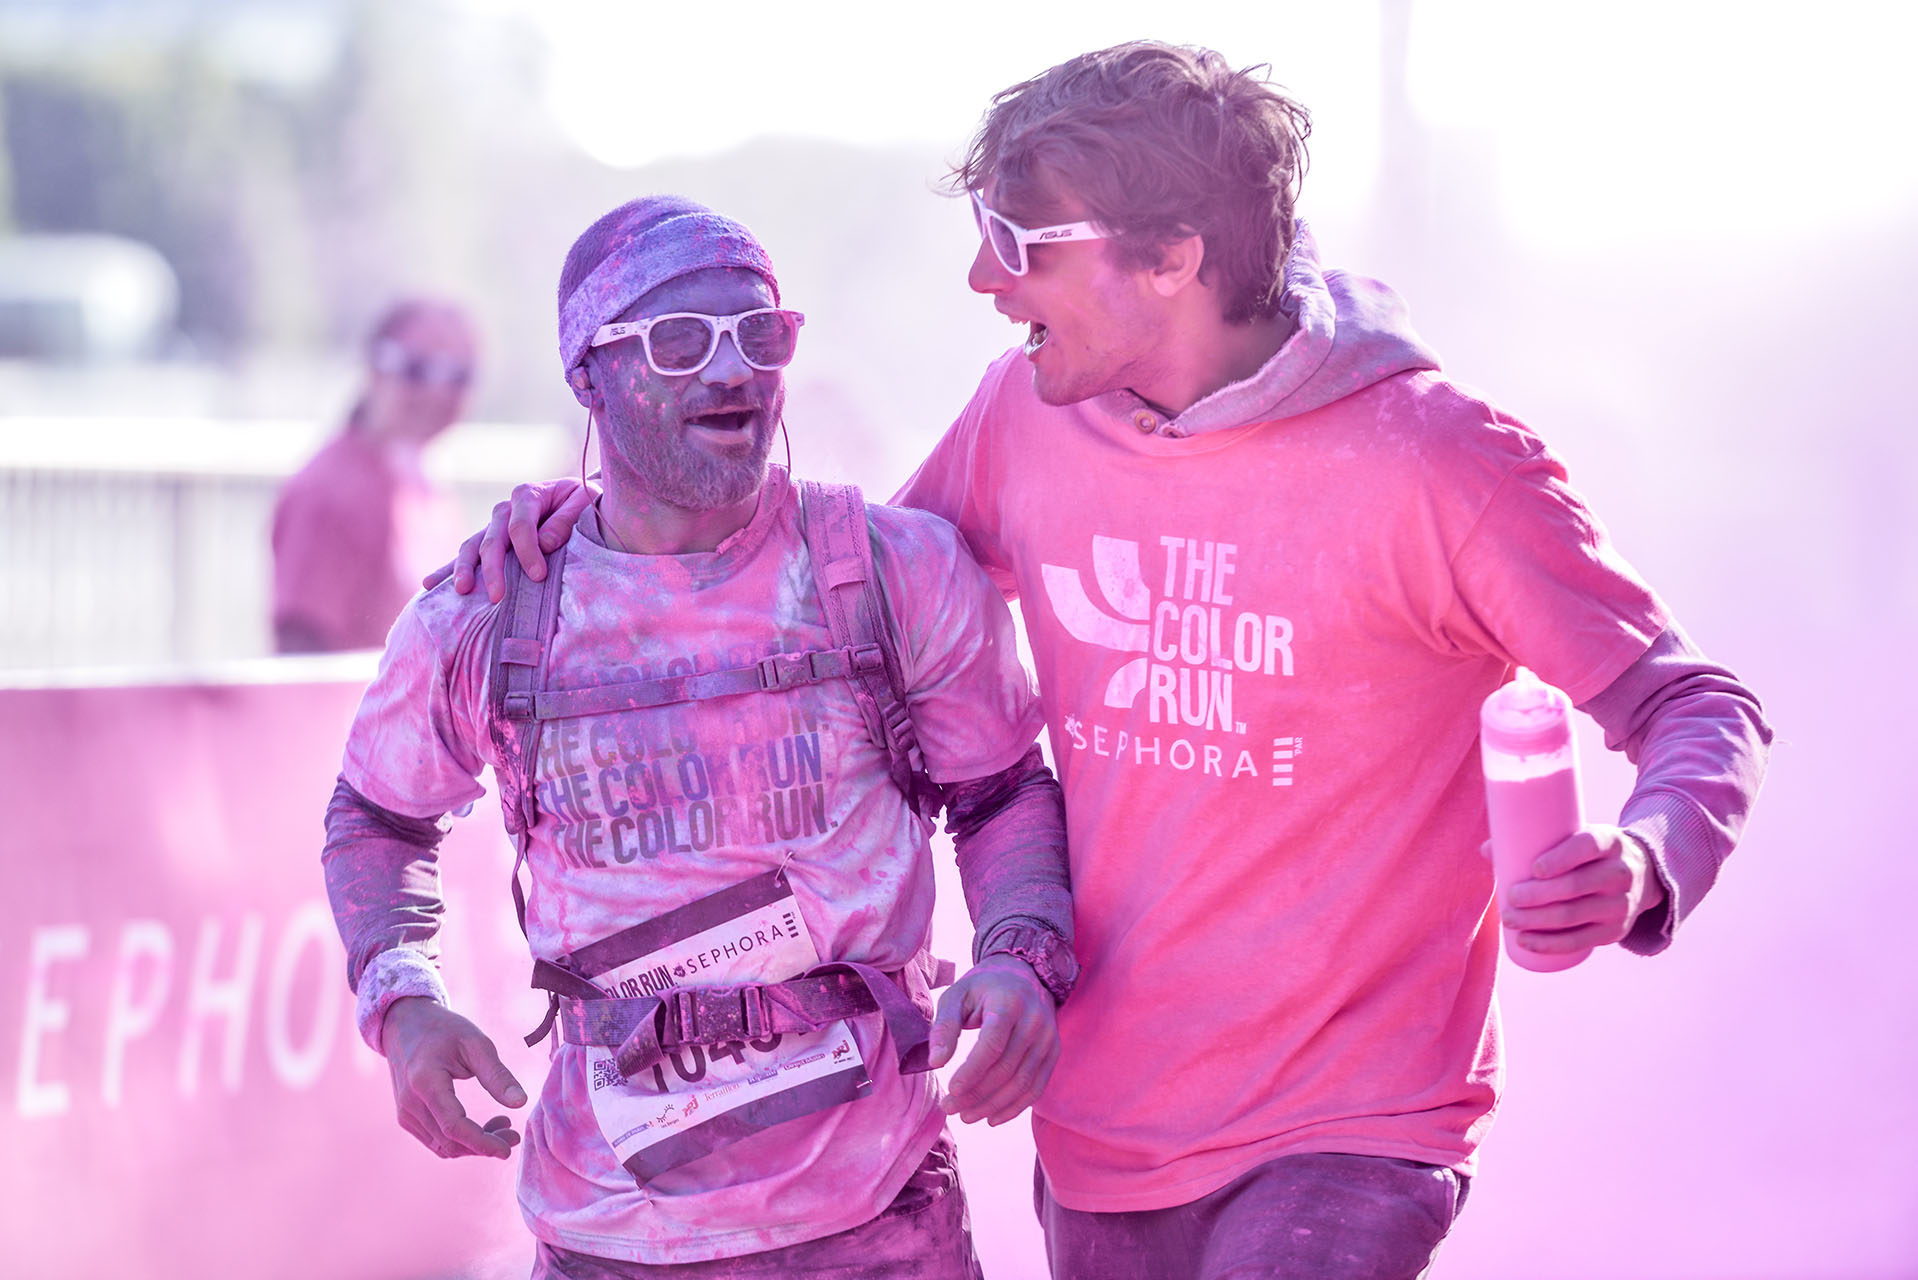 maya-angelsen-photographe-evenementiel-ile-de-france-color-run-mairie-de-paris-2015